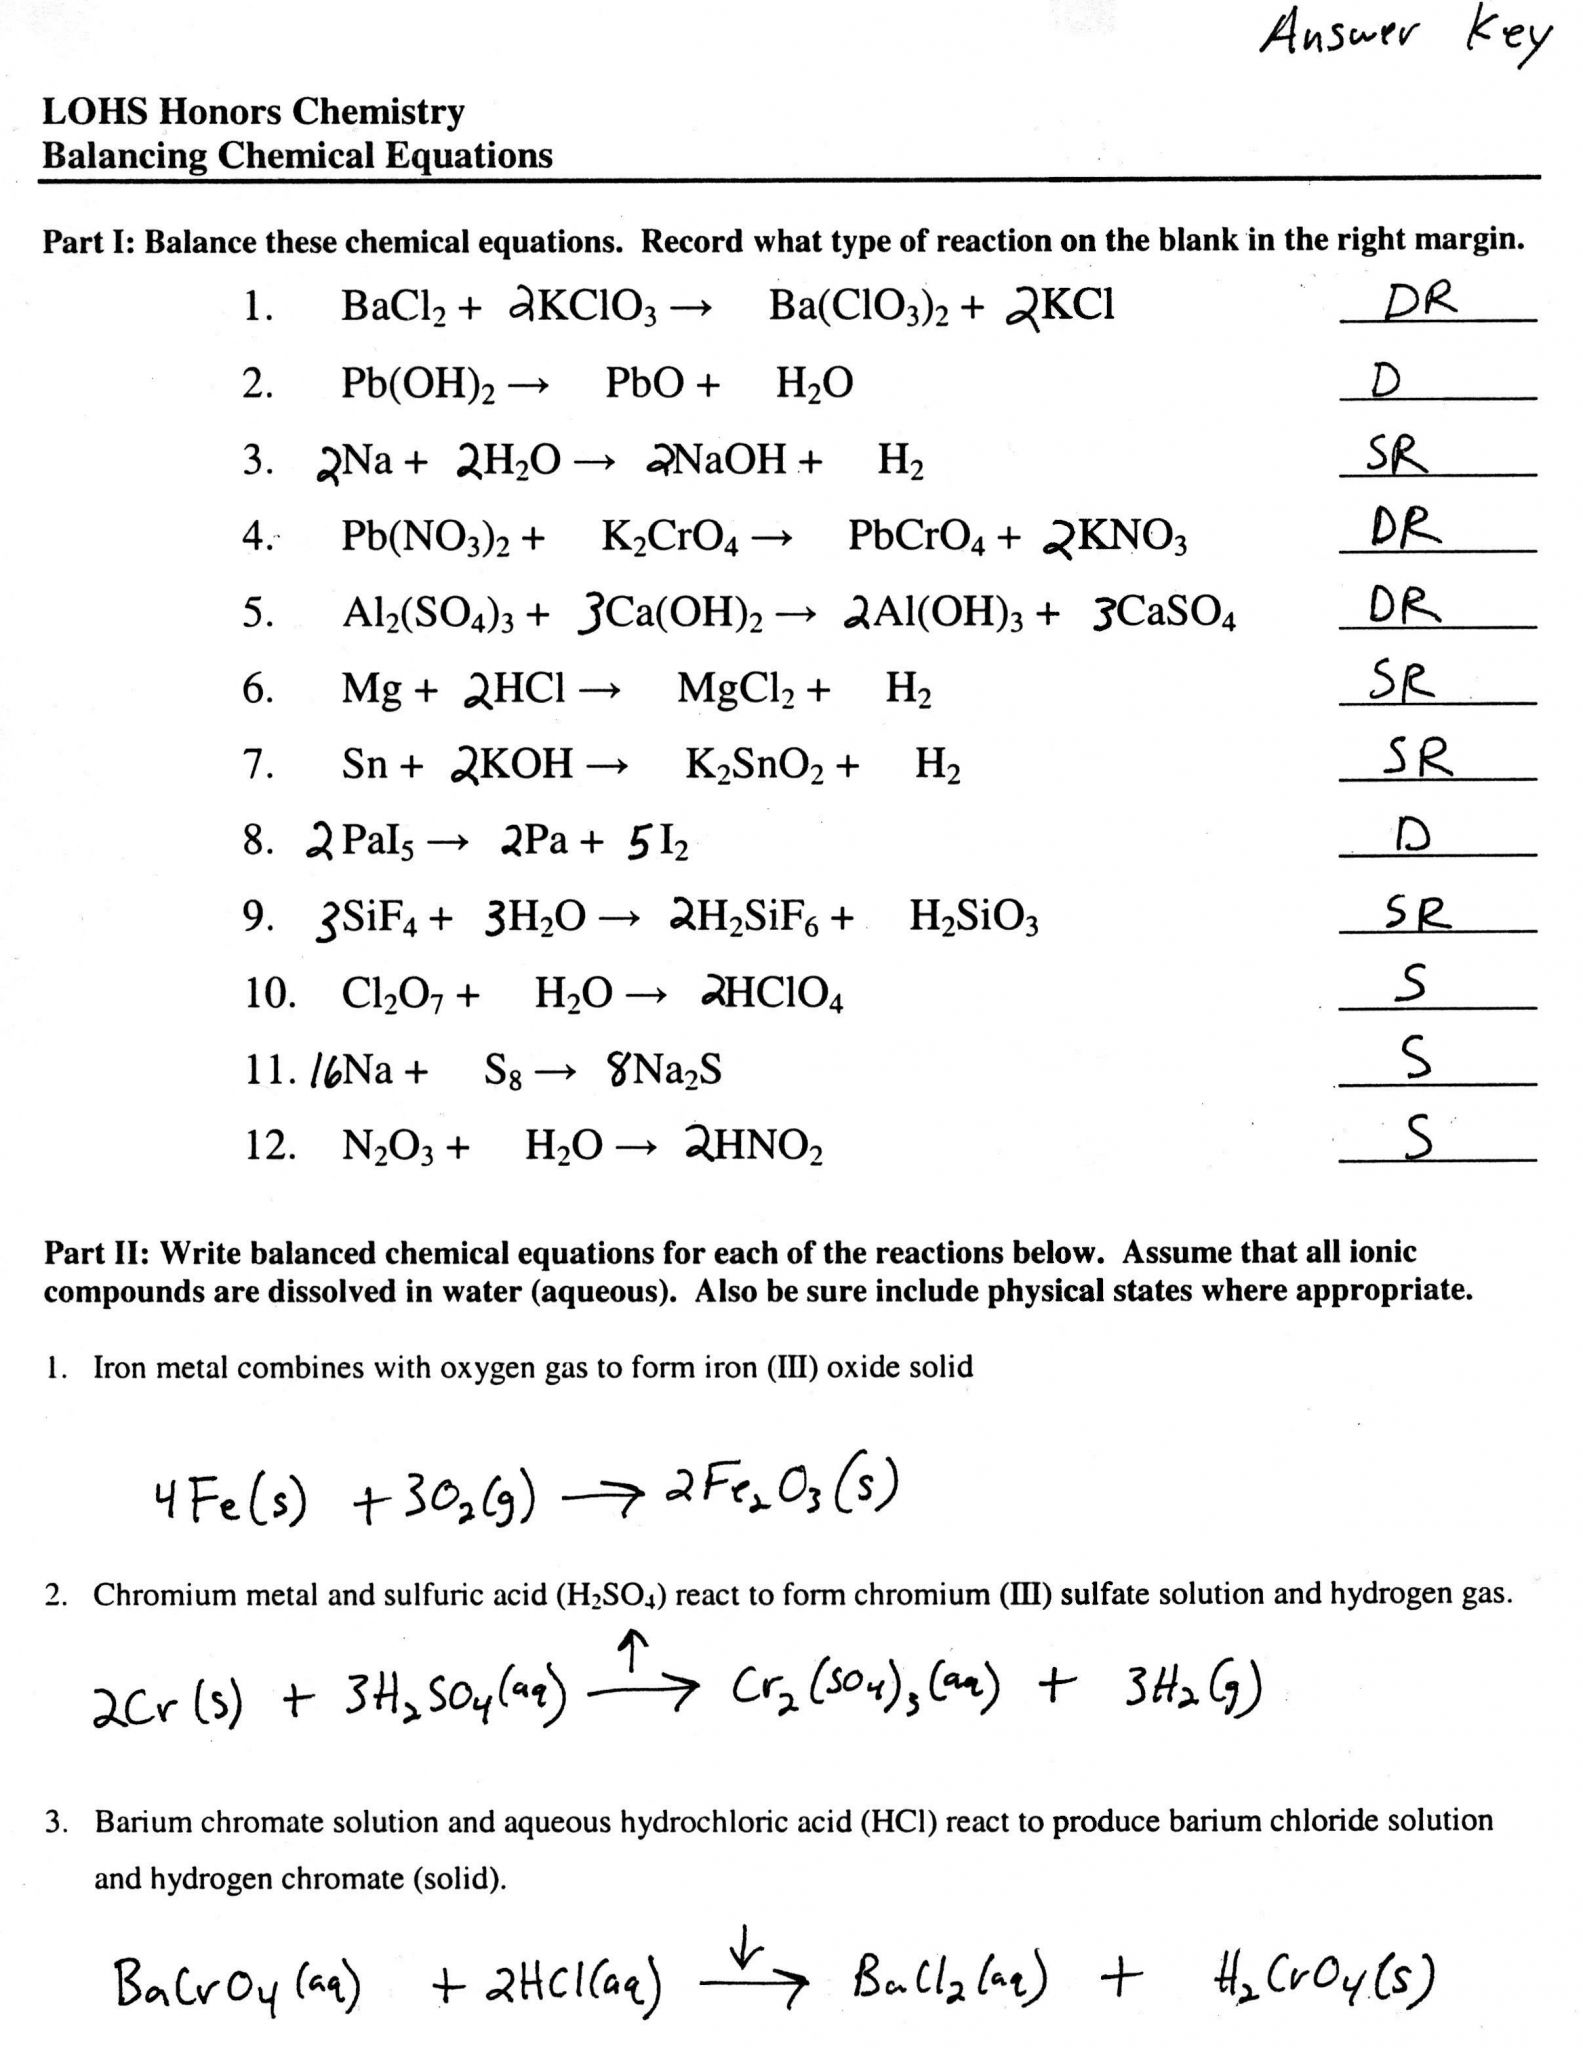 Balancing Equations Worksheet With Answers Doc